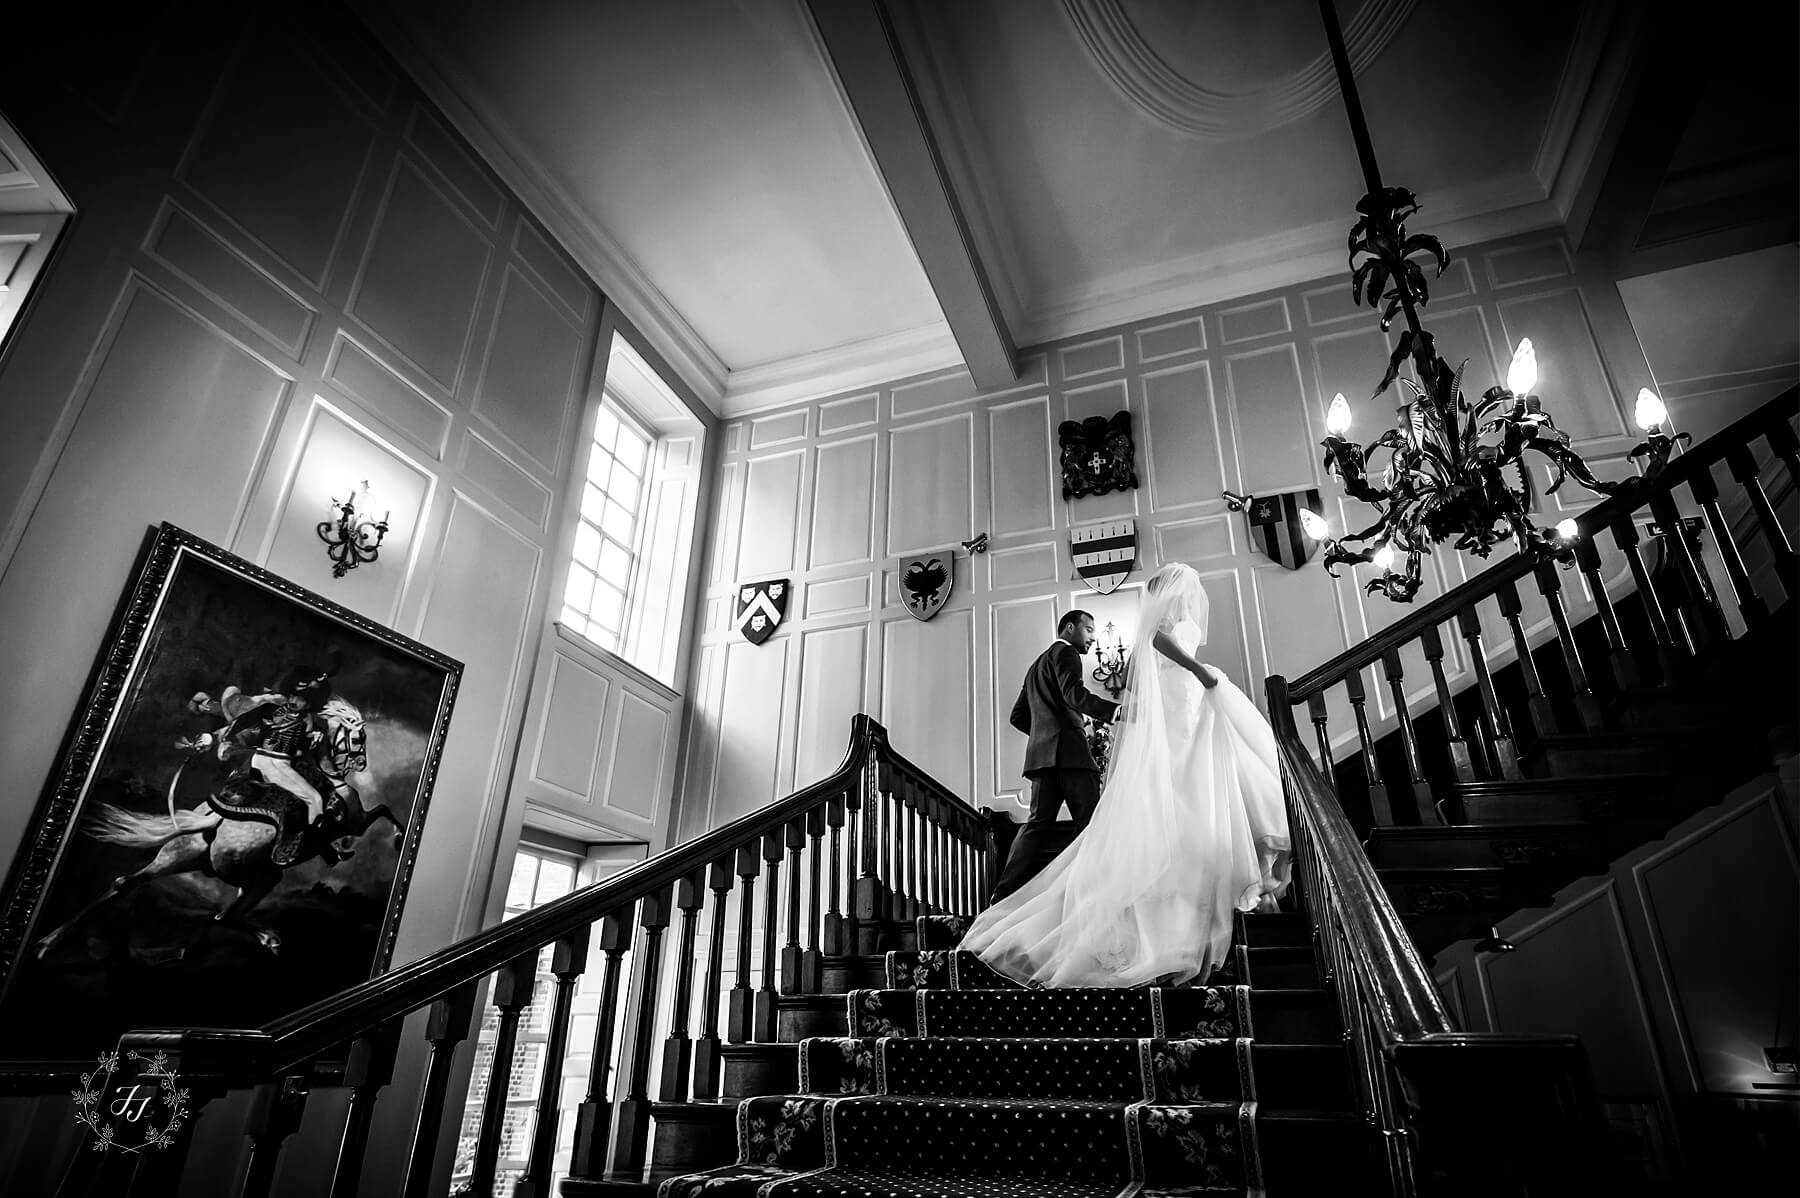 Photograph of Gosfield Hall stairs